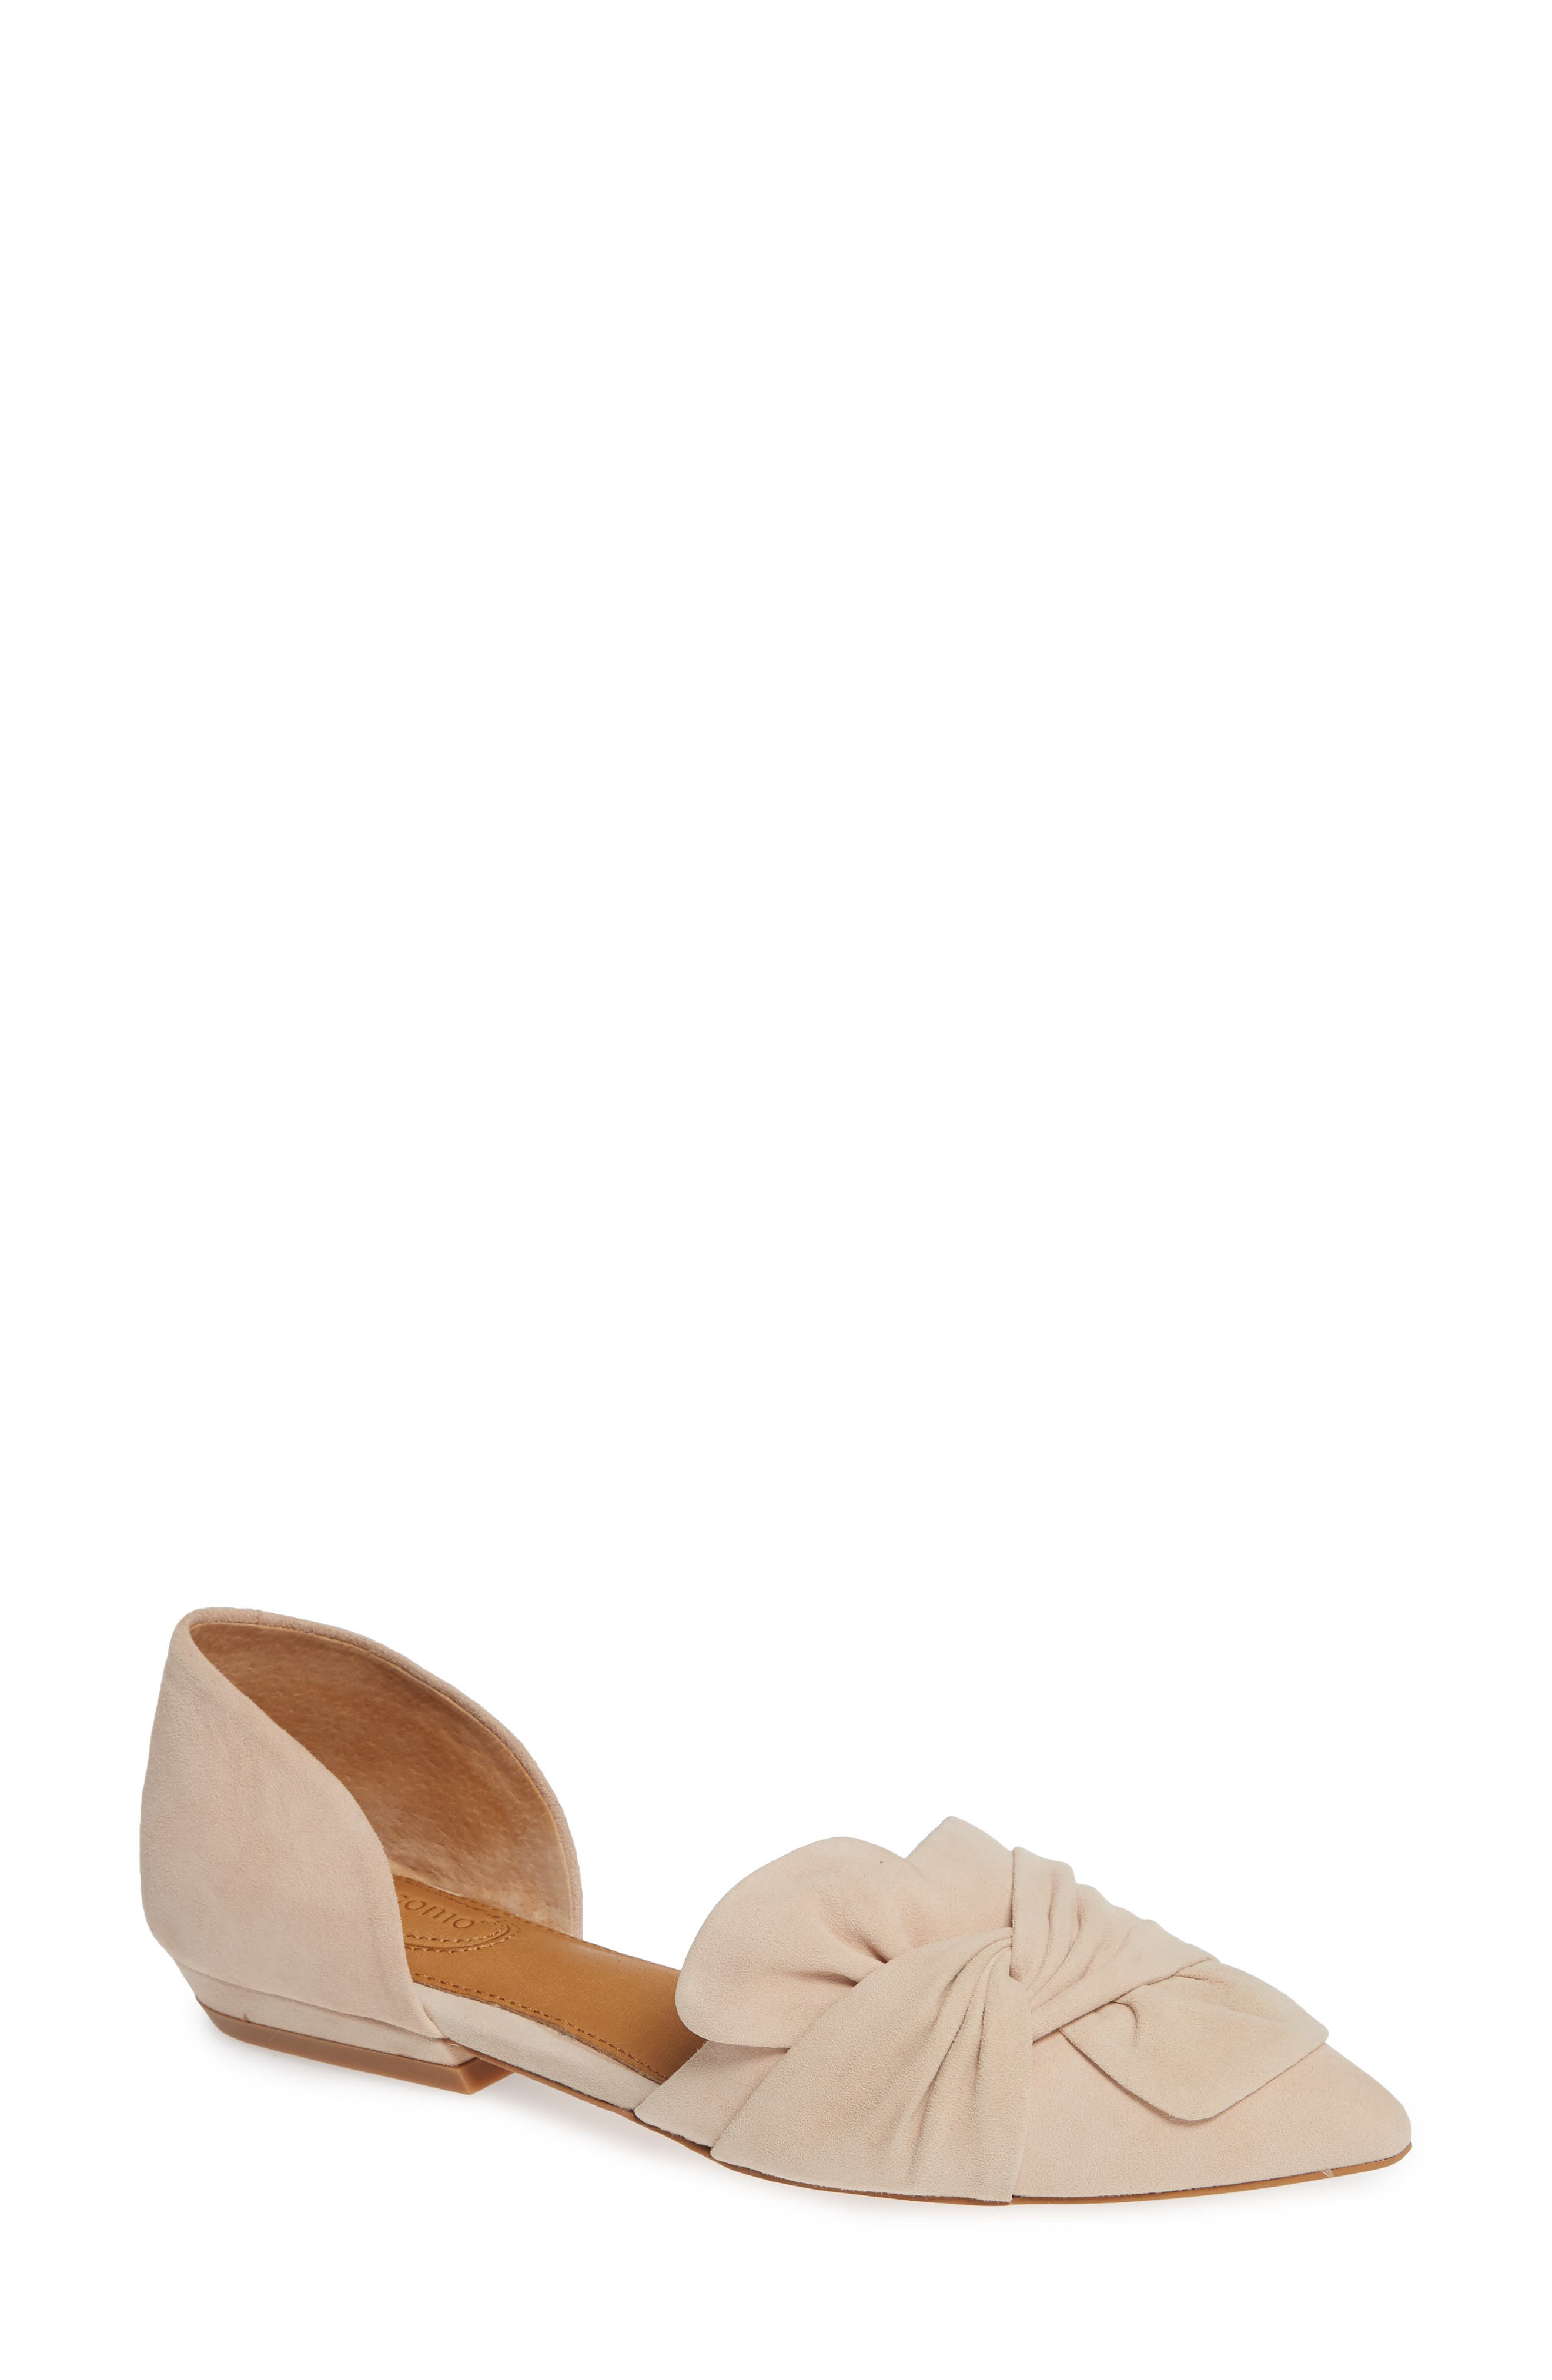 Mollie d'Orsay Flat,                         Main,                         color, Nude Suede